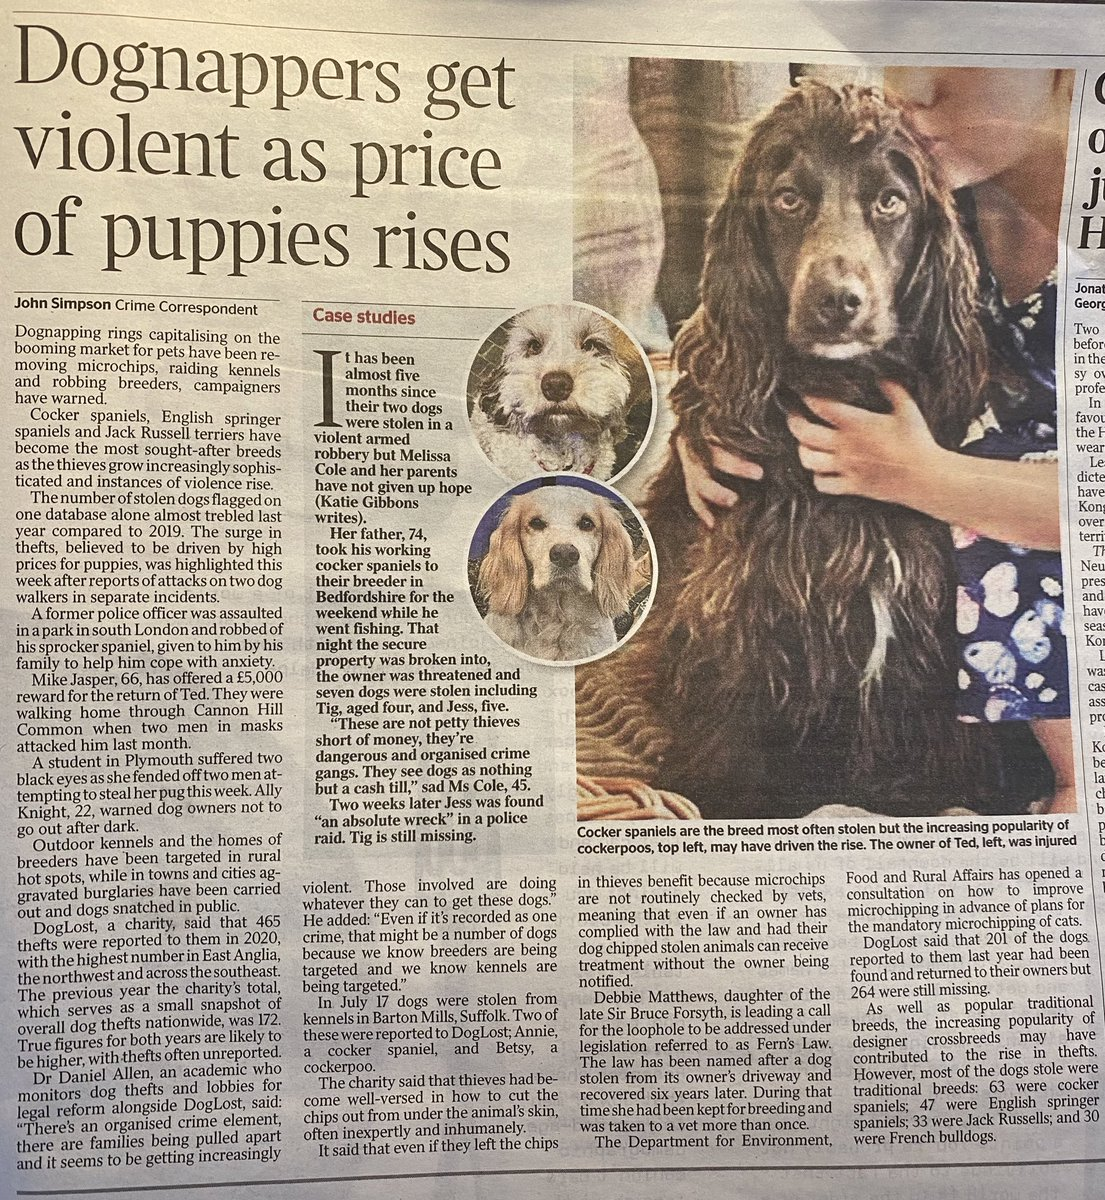 TY @thetimes for raising awareness about #DogTheft and #FernsLaw : Dognappers get violent as price of puppies rises #PetTheftReform @thejohnsimpson @Dr_Dan_1 @DoglostUK @VetsGetScanning @ZacGoldsmith @marcthevet @tomhunt1988 @RobertBuckland